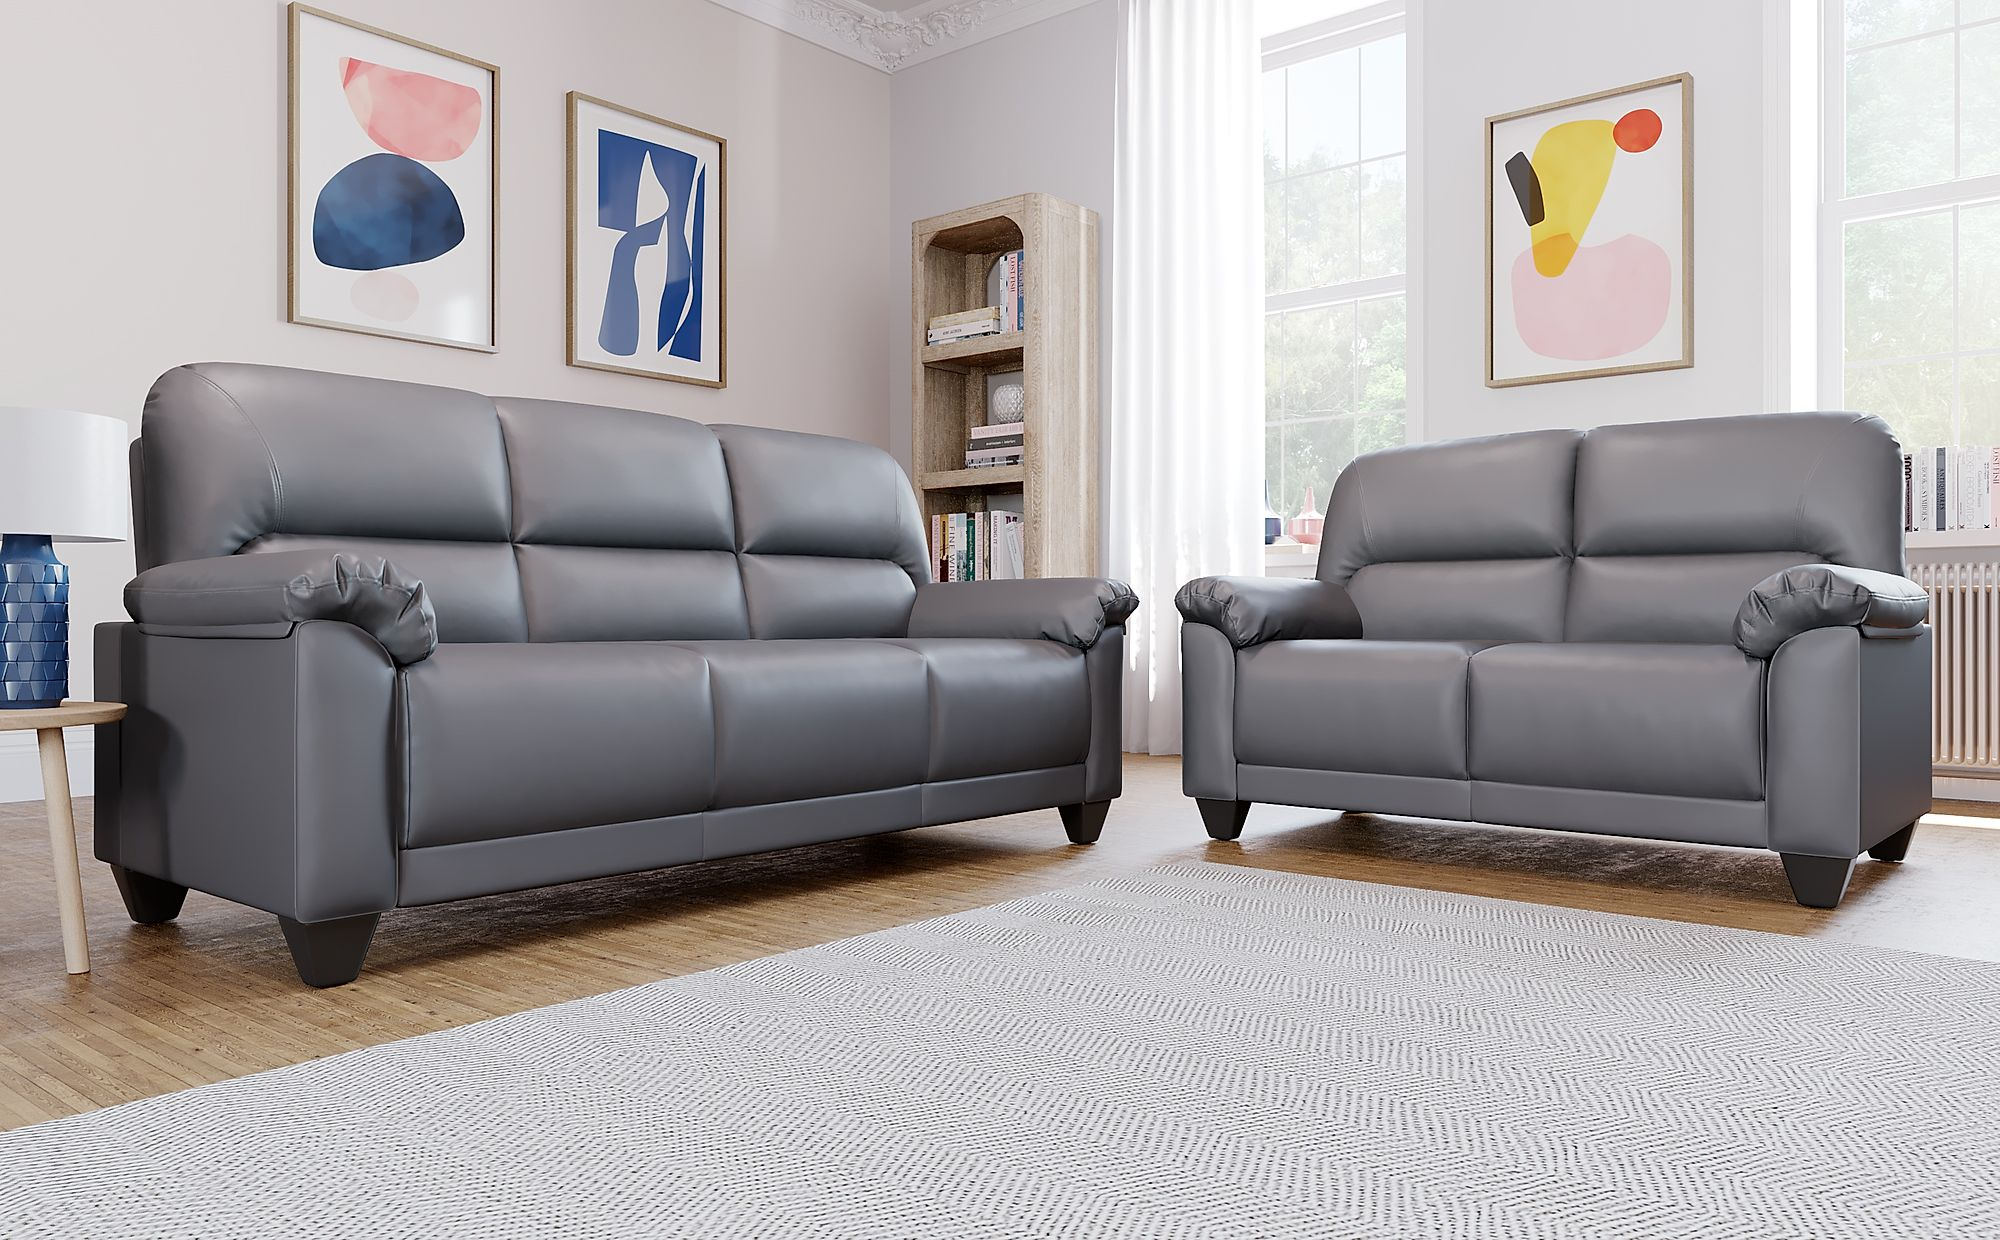 Awe Inspiring Kenton Small Grey Leather 3 2 Seater Sofa Set Home Remodeling Inspirations Genioncuboardxyz